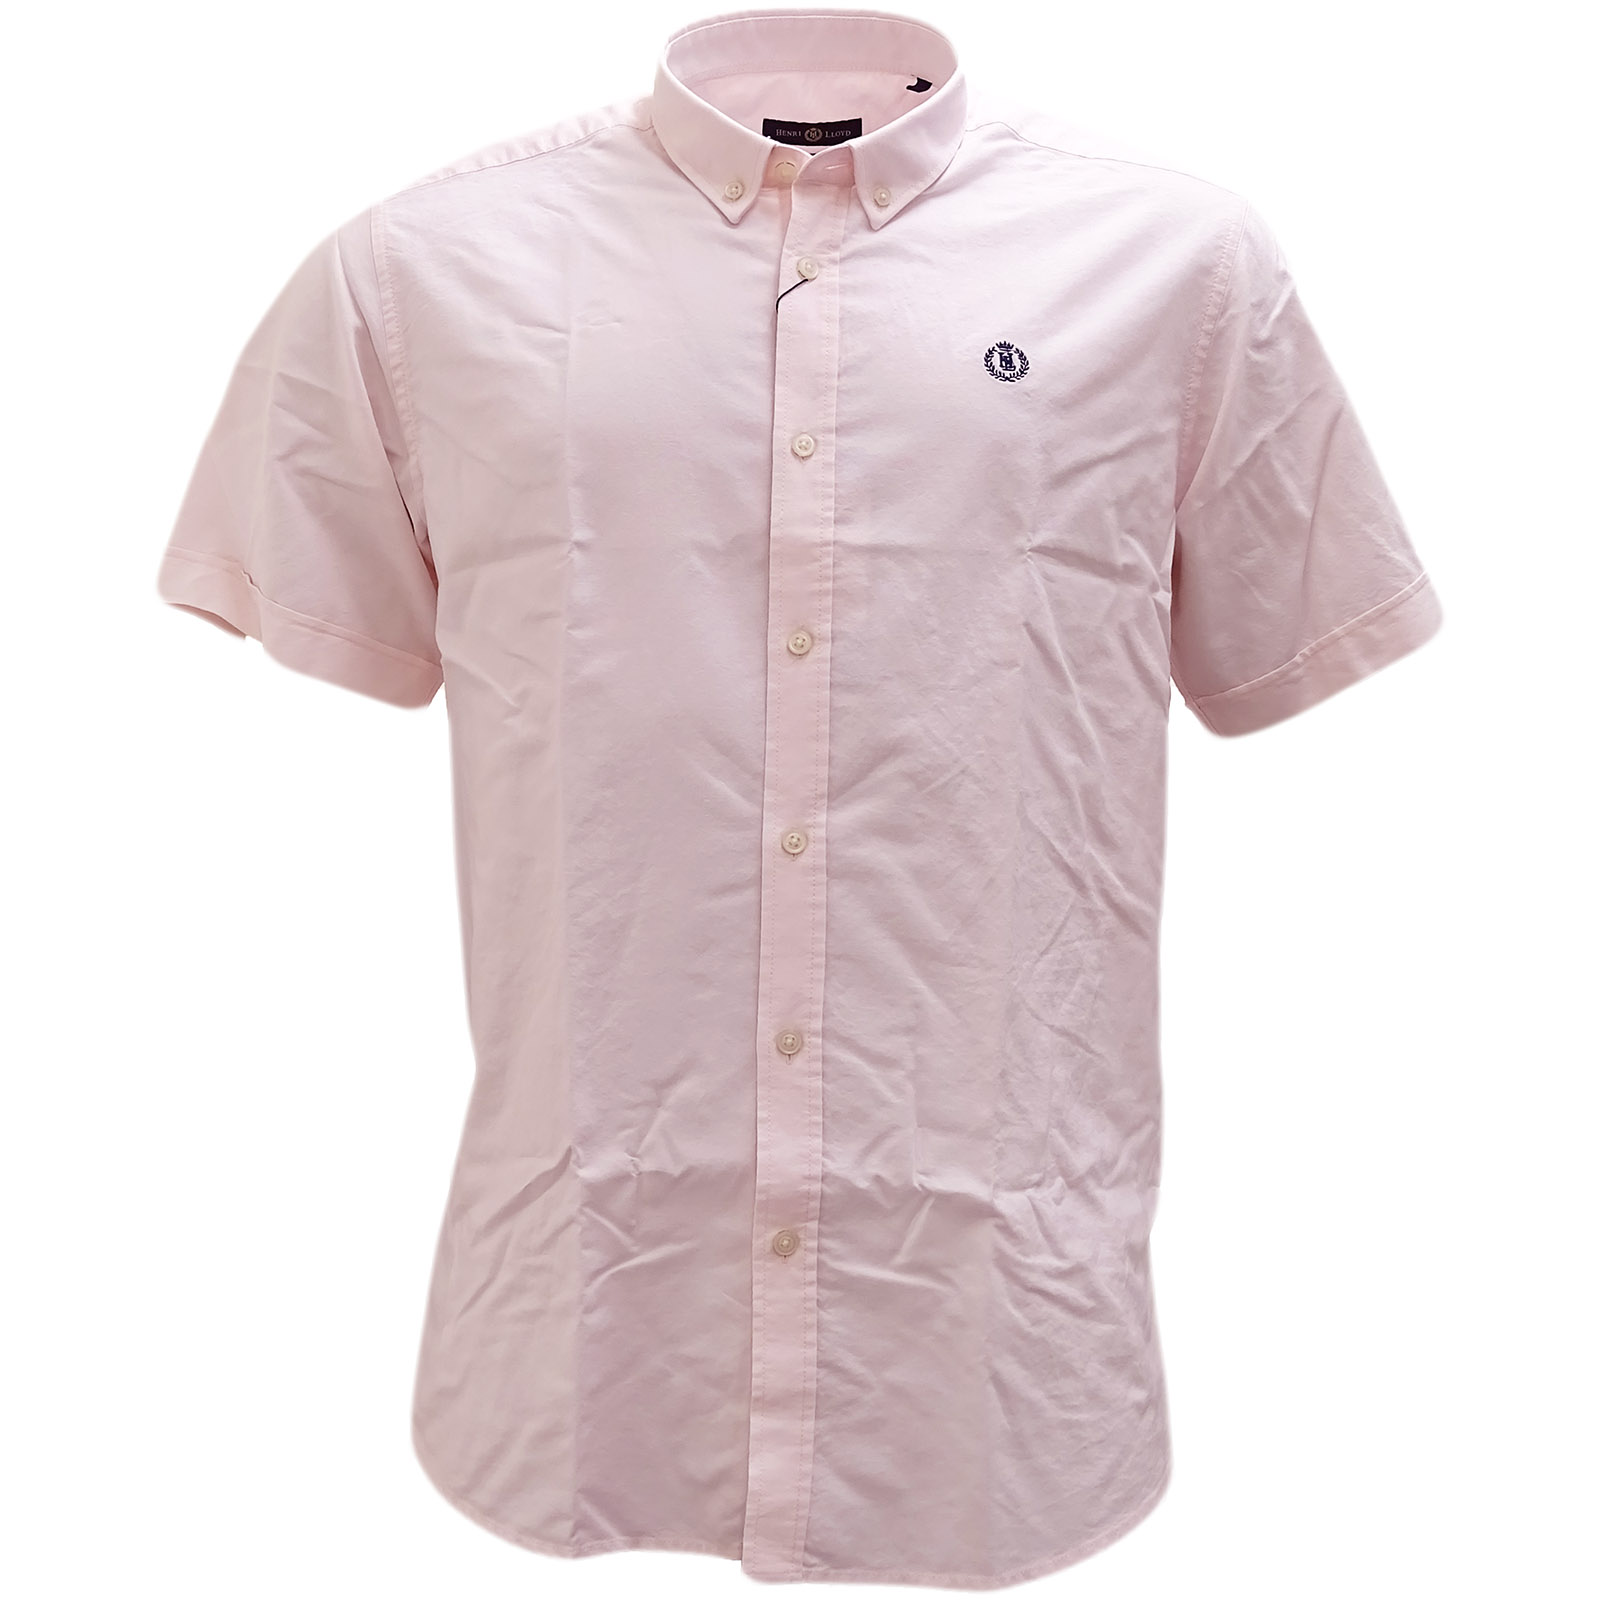 Henri Lloyd Pink Plain Button Down Oxford Shirt Club Ss -